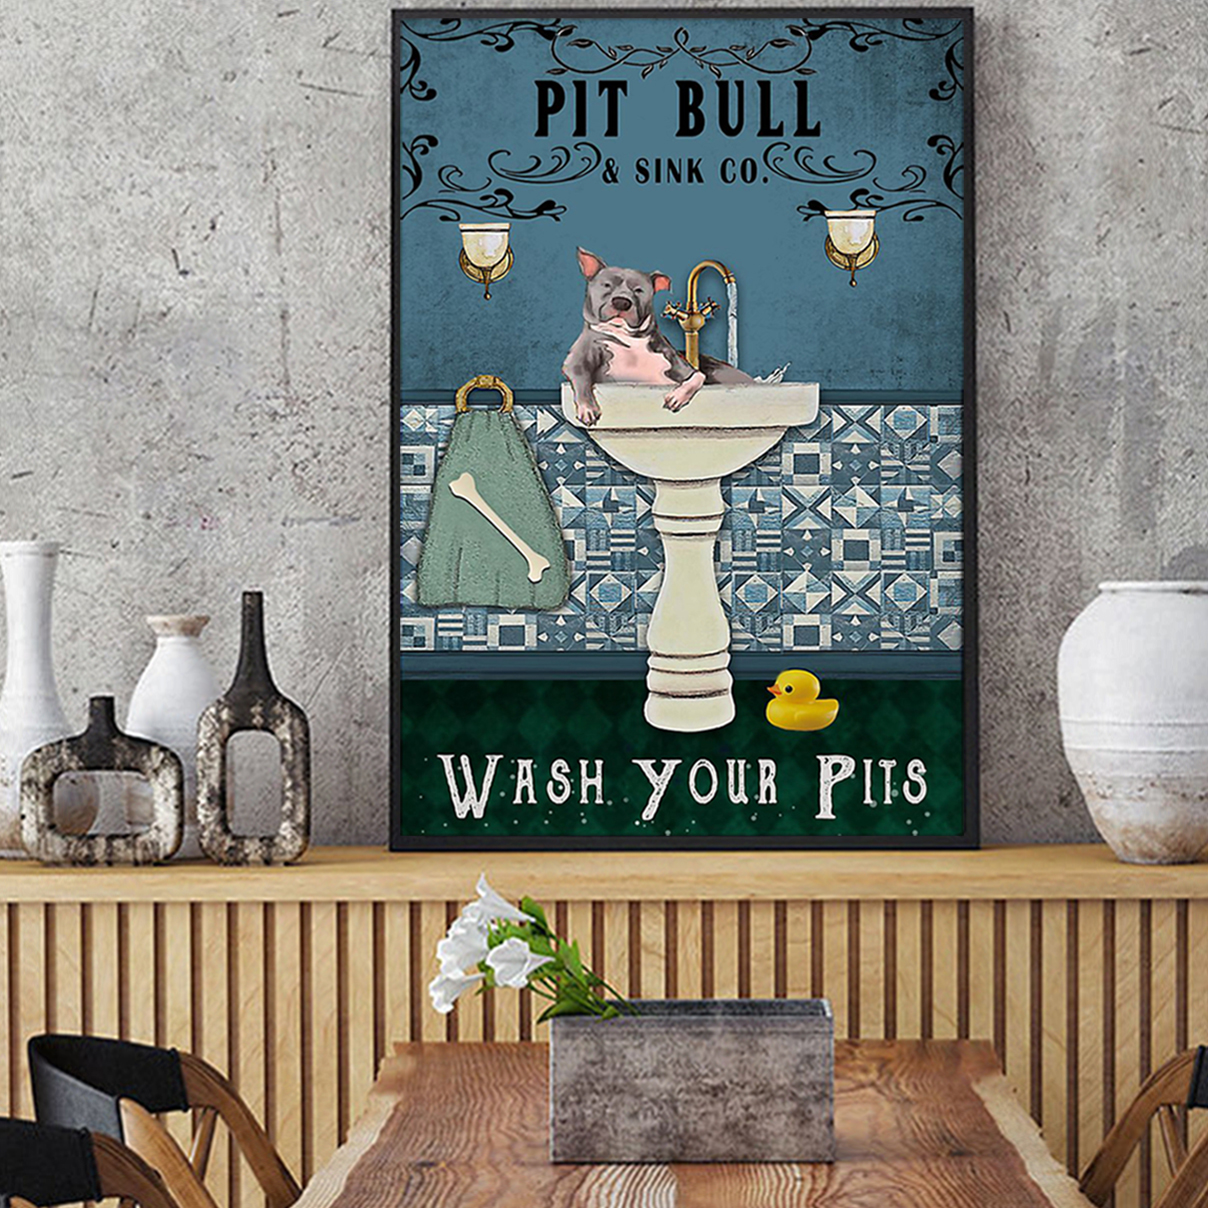 Pit bull sink co wash your pits poster A3